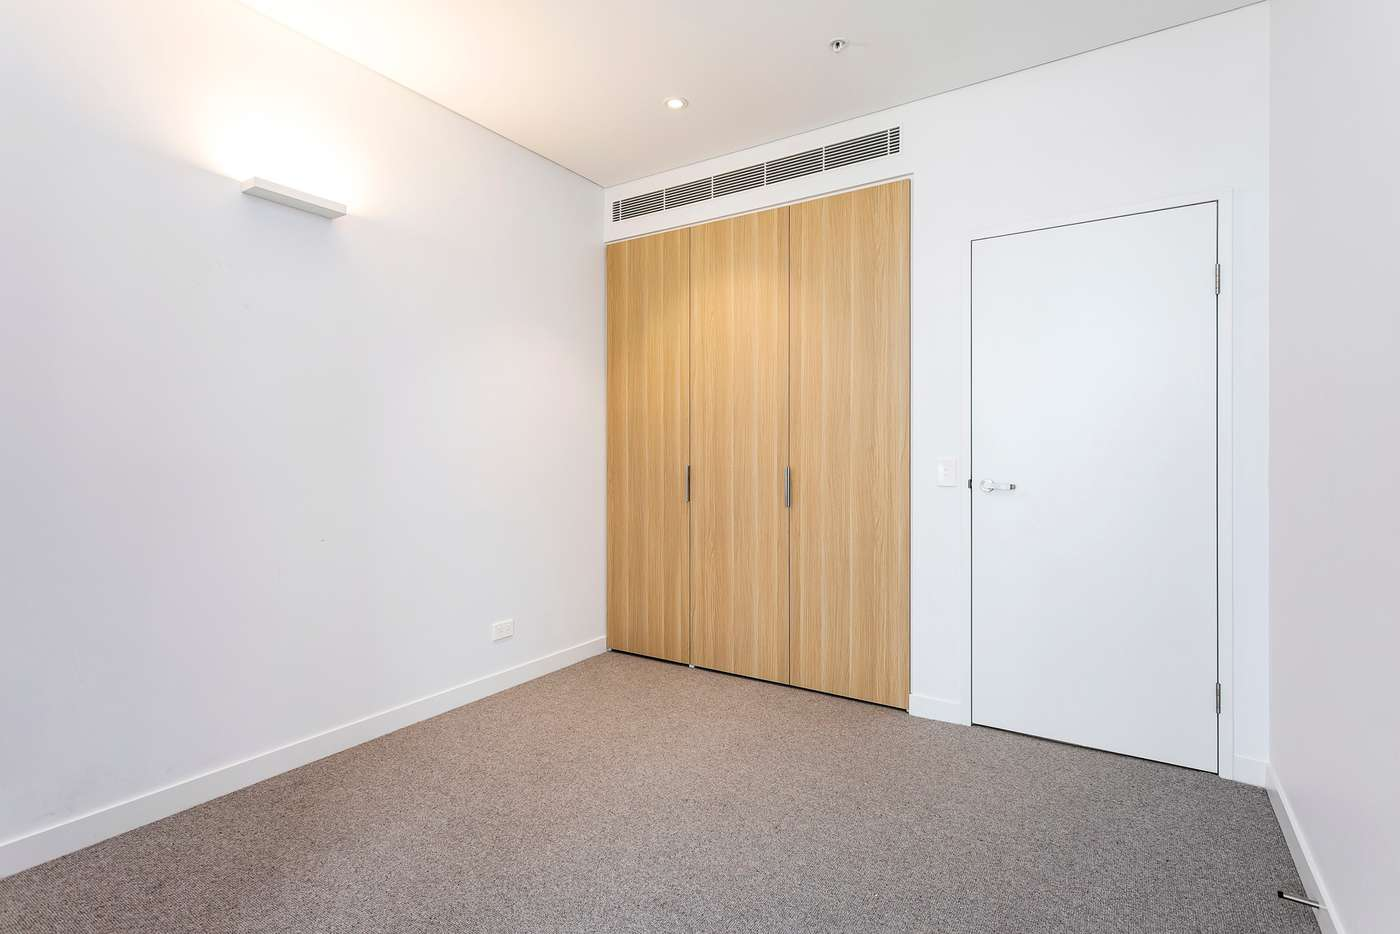 Sixth view of Homely apartment listing, 2601/88 Church Street, Parramatta NSW 2150